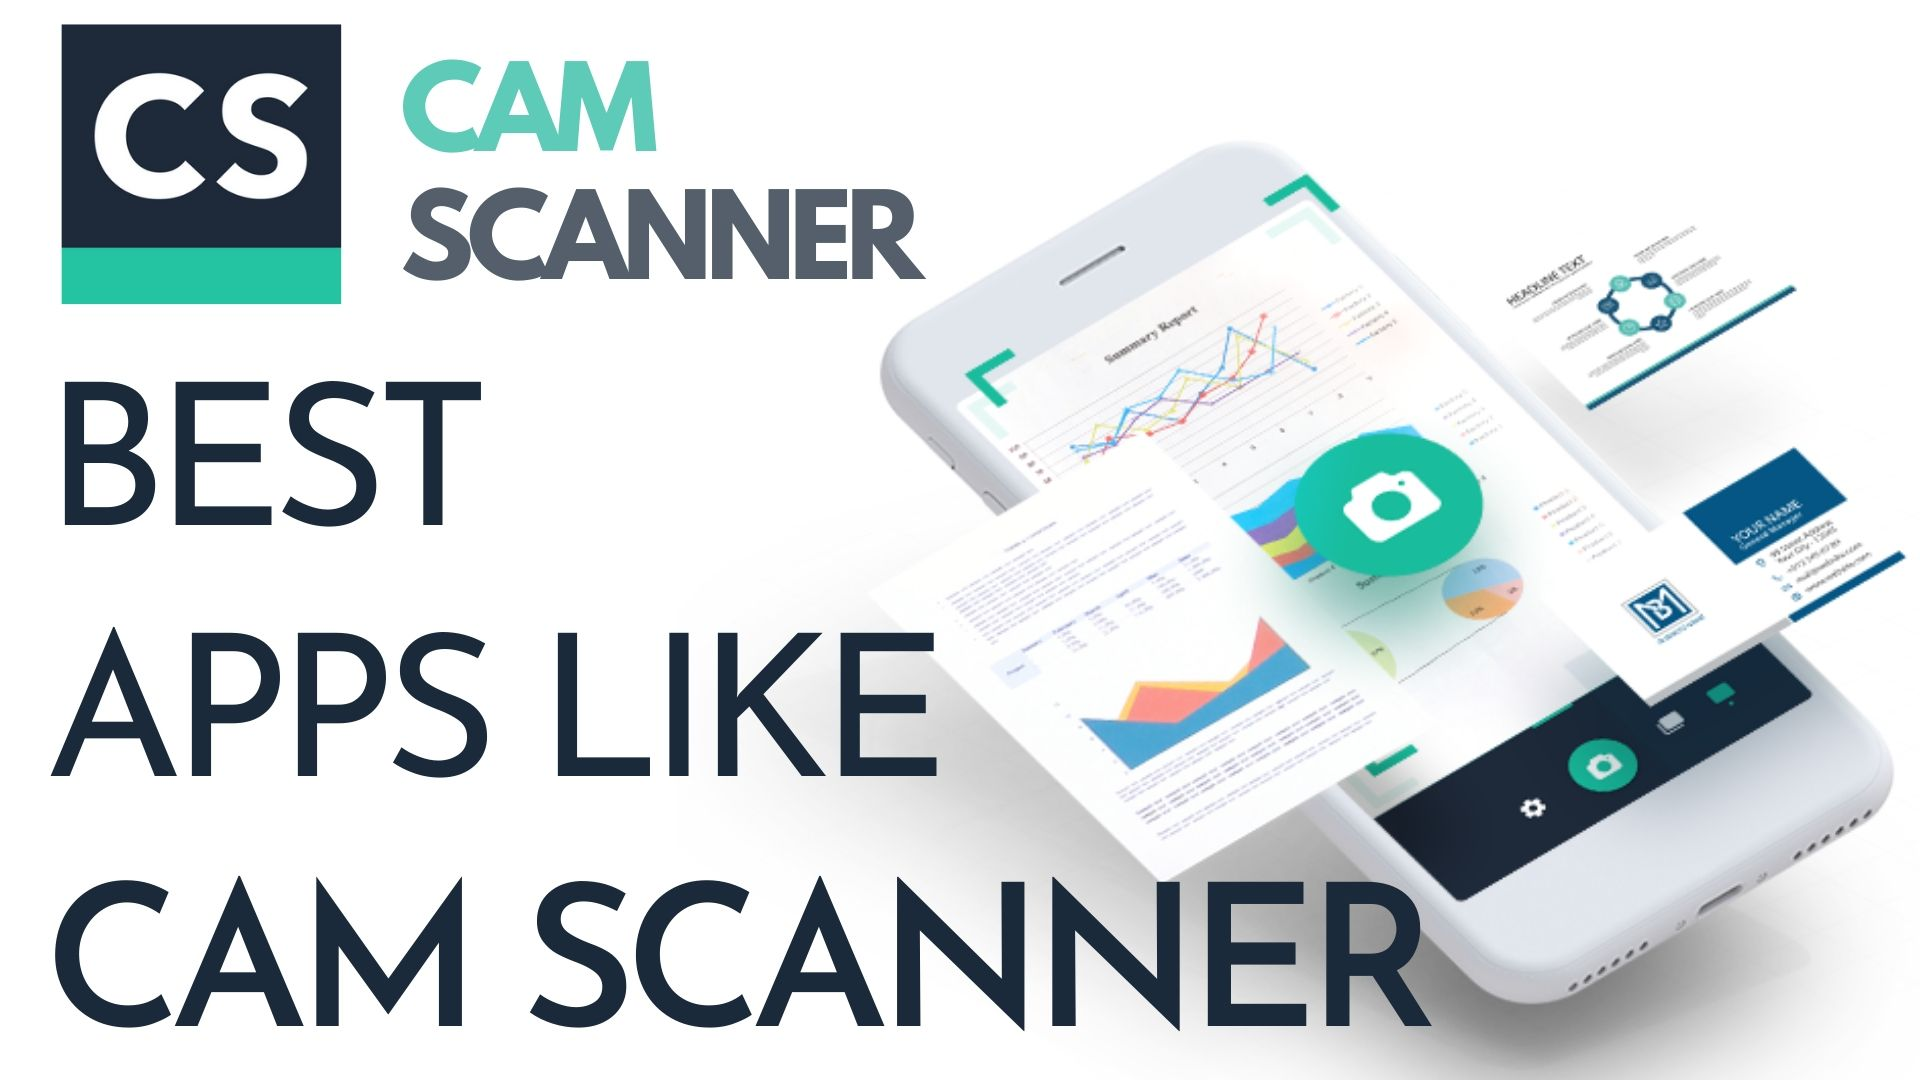 CamScanner - apps like camscanner